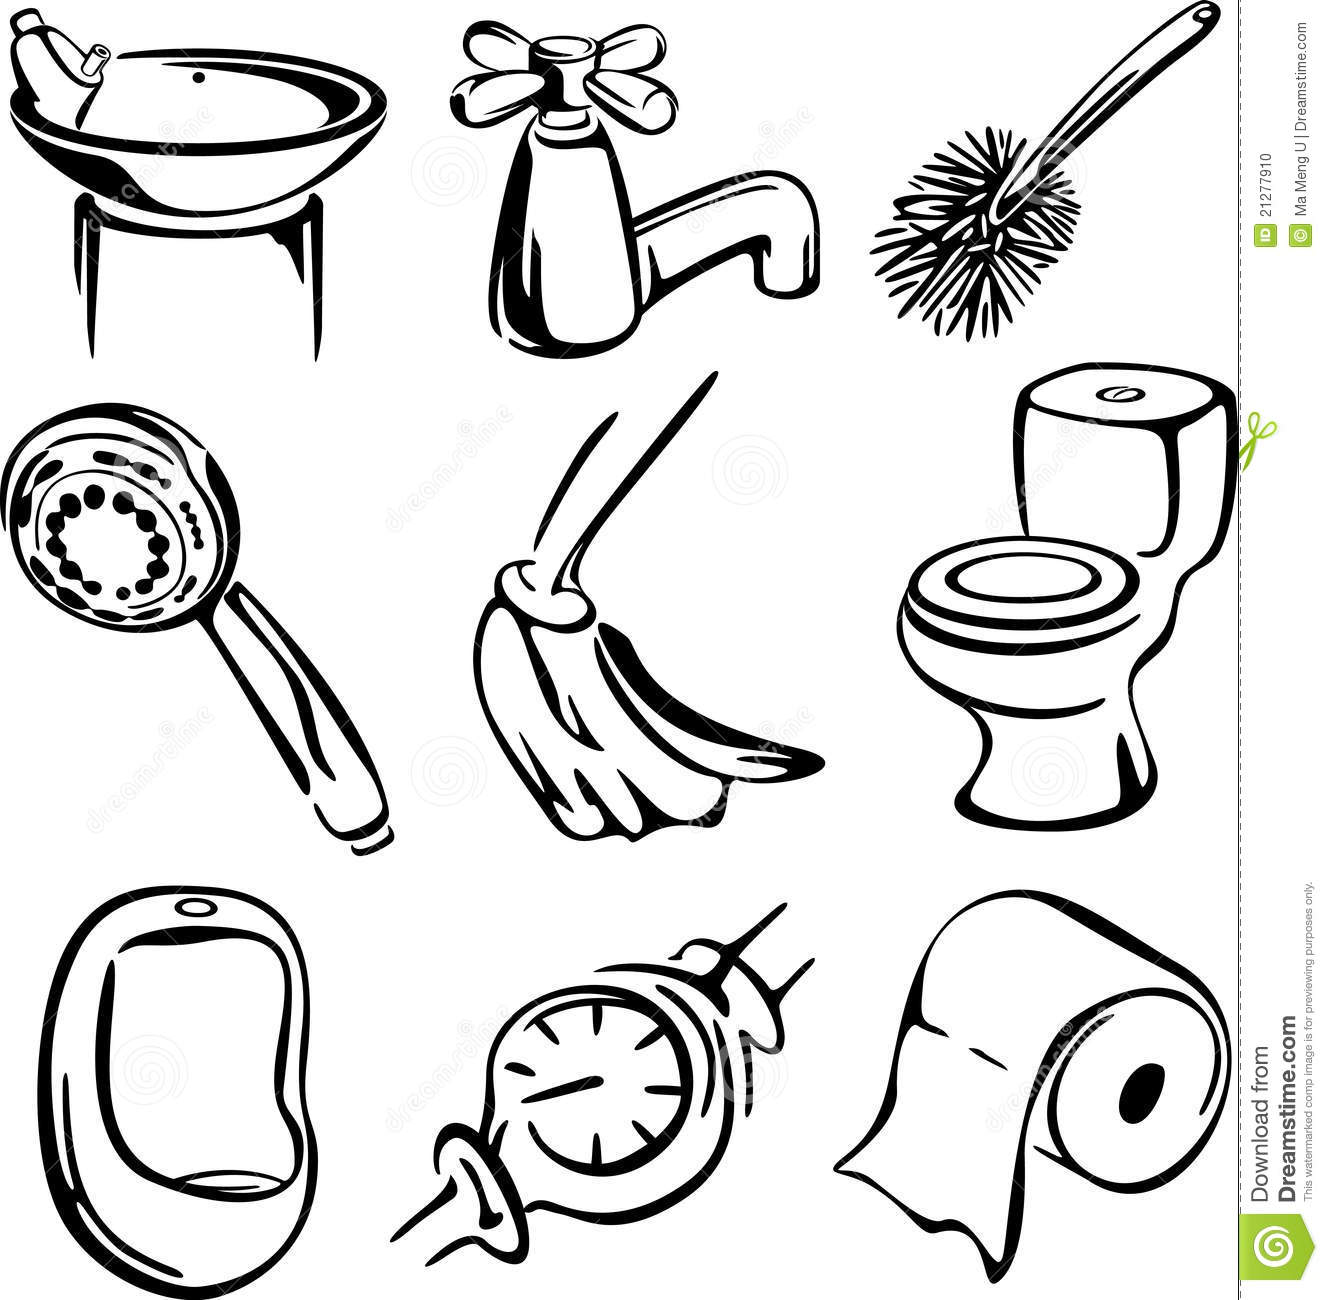 Dessin de positionnement de toilette photo stock image 21277910 - Toilettes noir et blanc ...